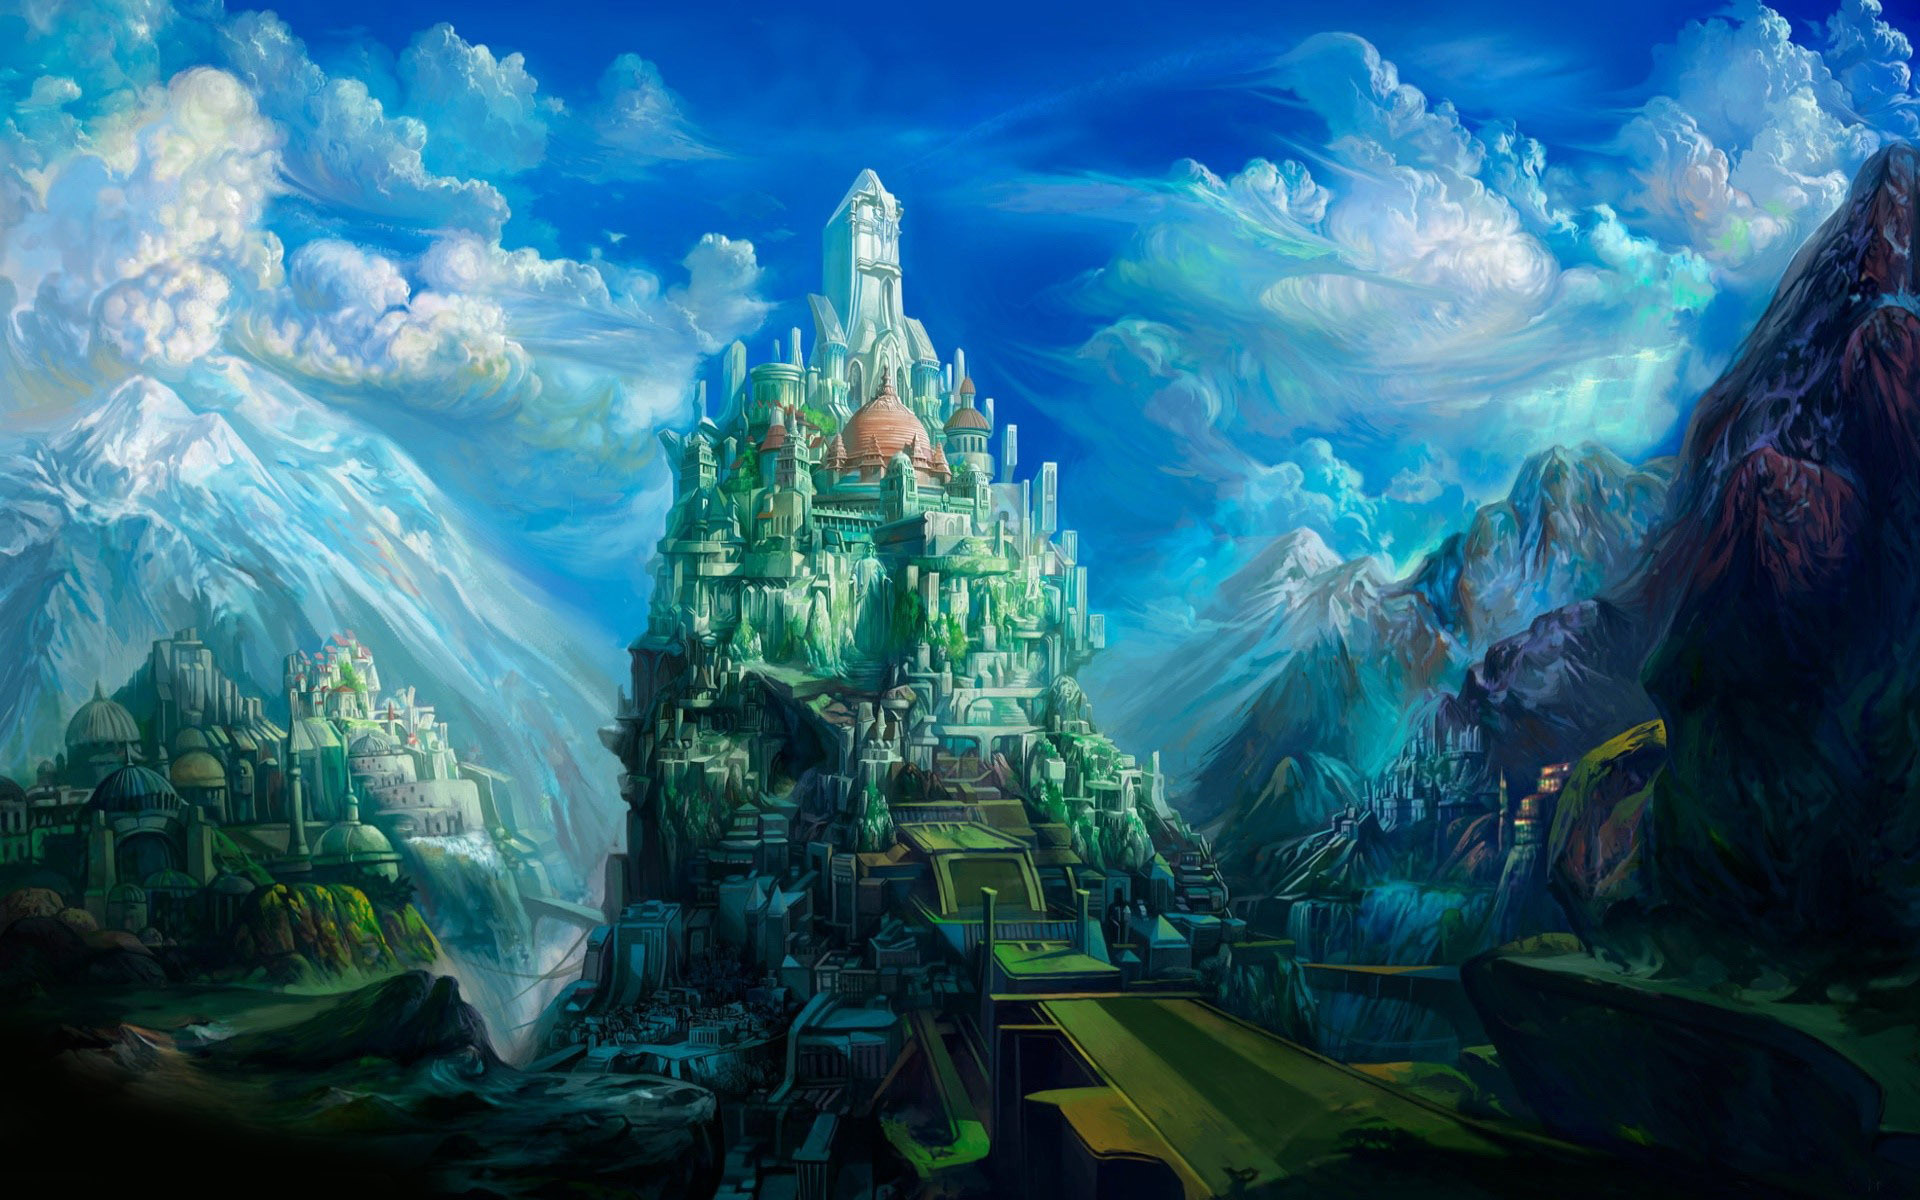 backgrounds for blue castle backgrounds | www.8backgrounds